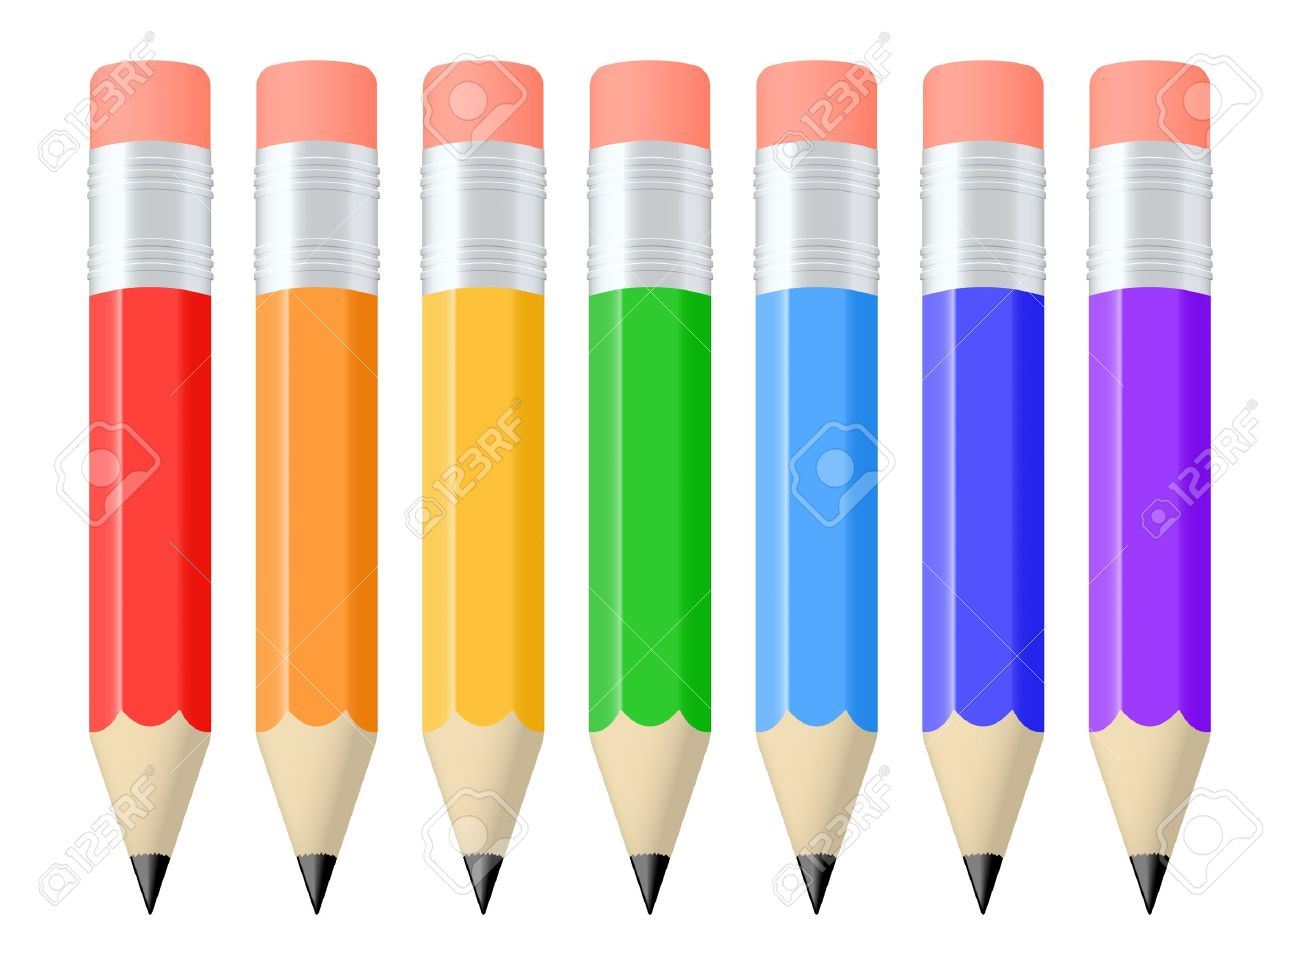 Clipart Images Of Pencils.